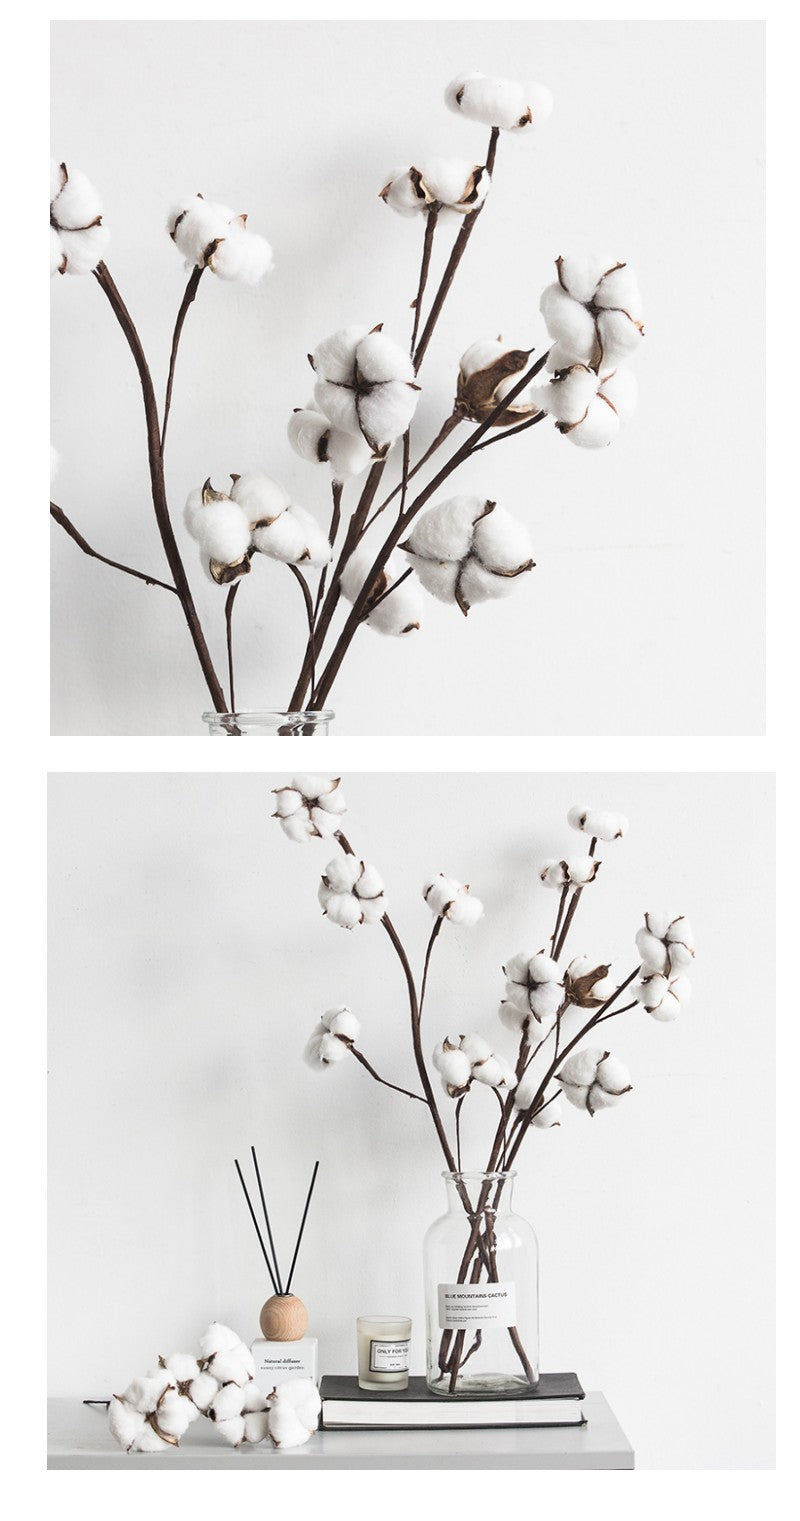 Cotton Flower Stalks, Rustic Atificial Flowers, Cotton Stems, Cotton Stalks, Flower Arrangement